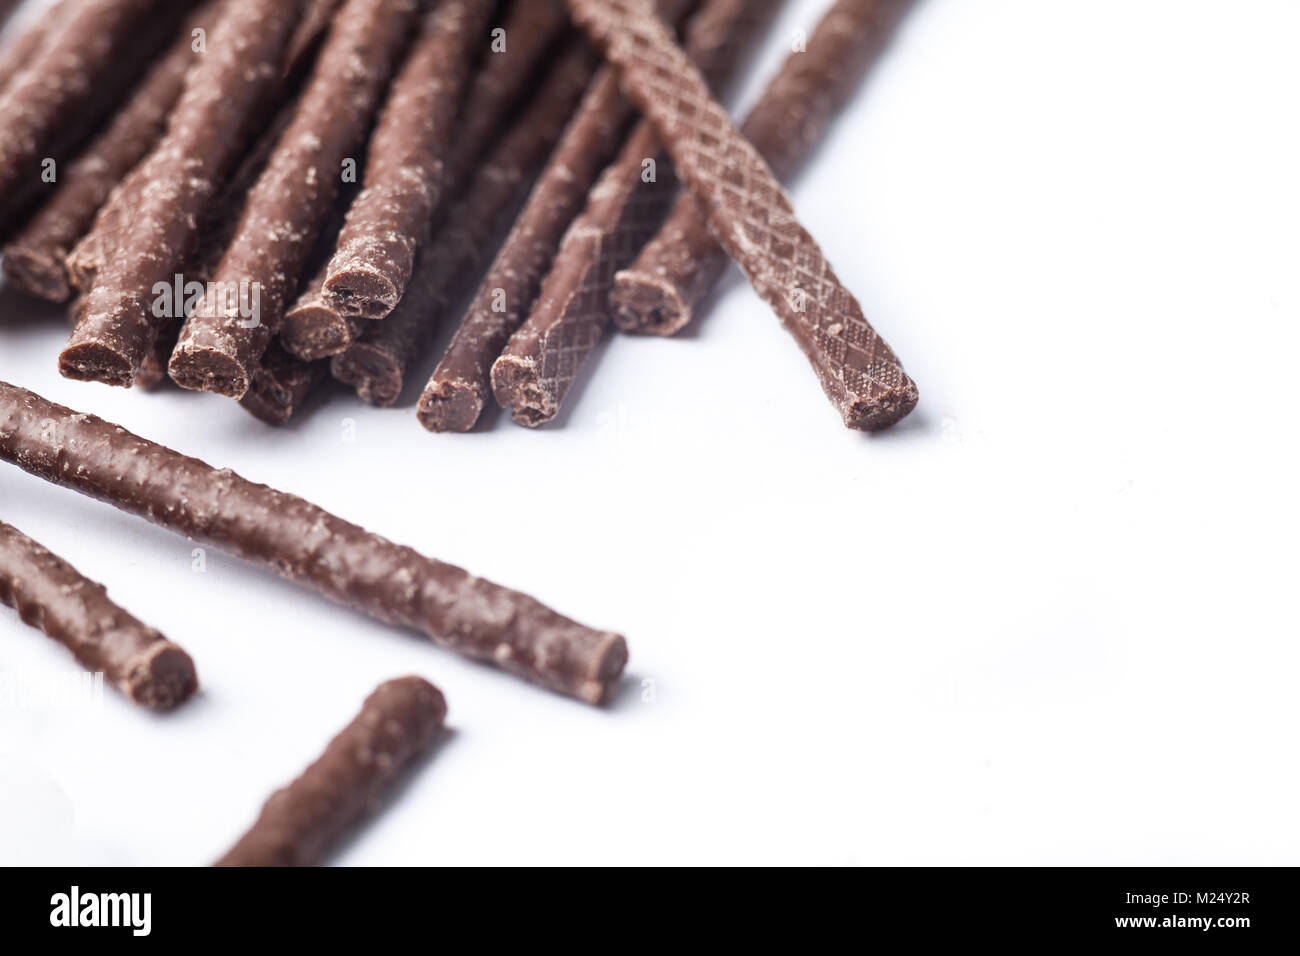 Chocolate Flavoured Stick Candy close up with copy space - Stock Image